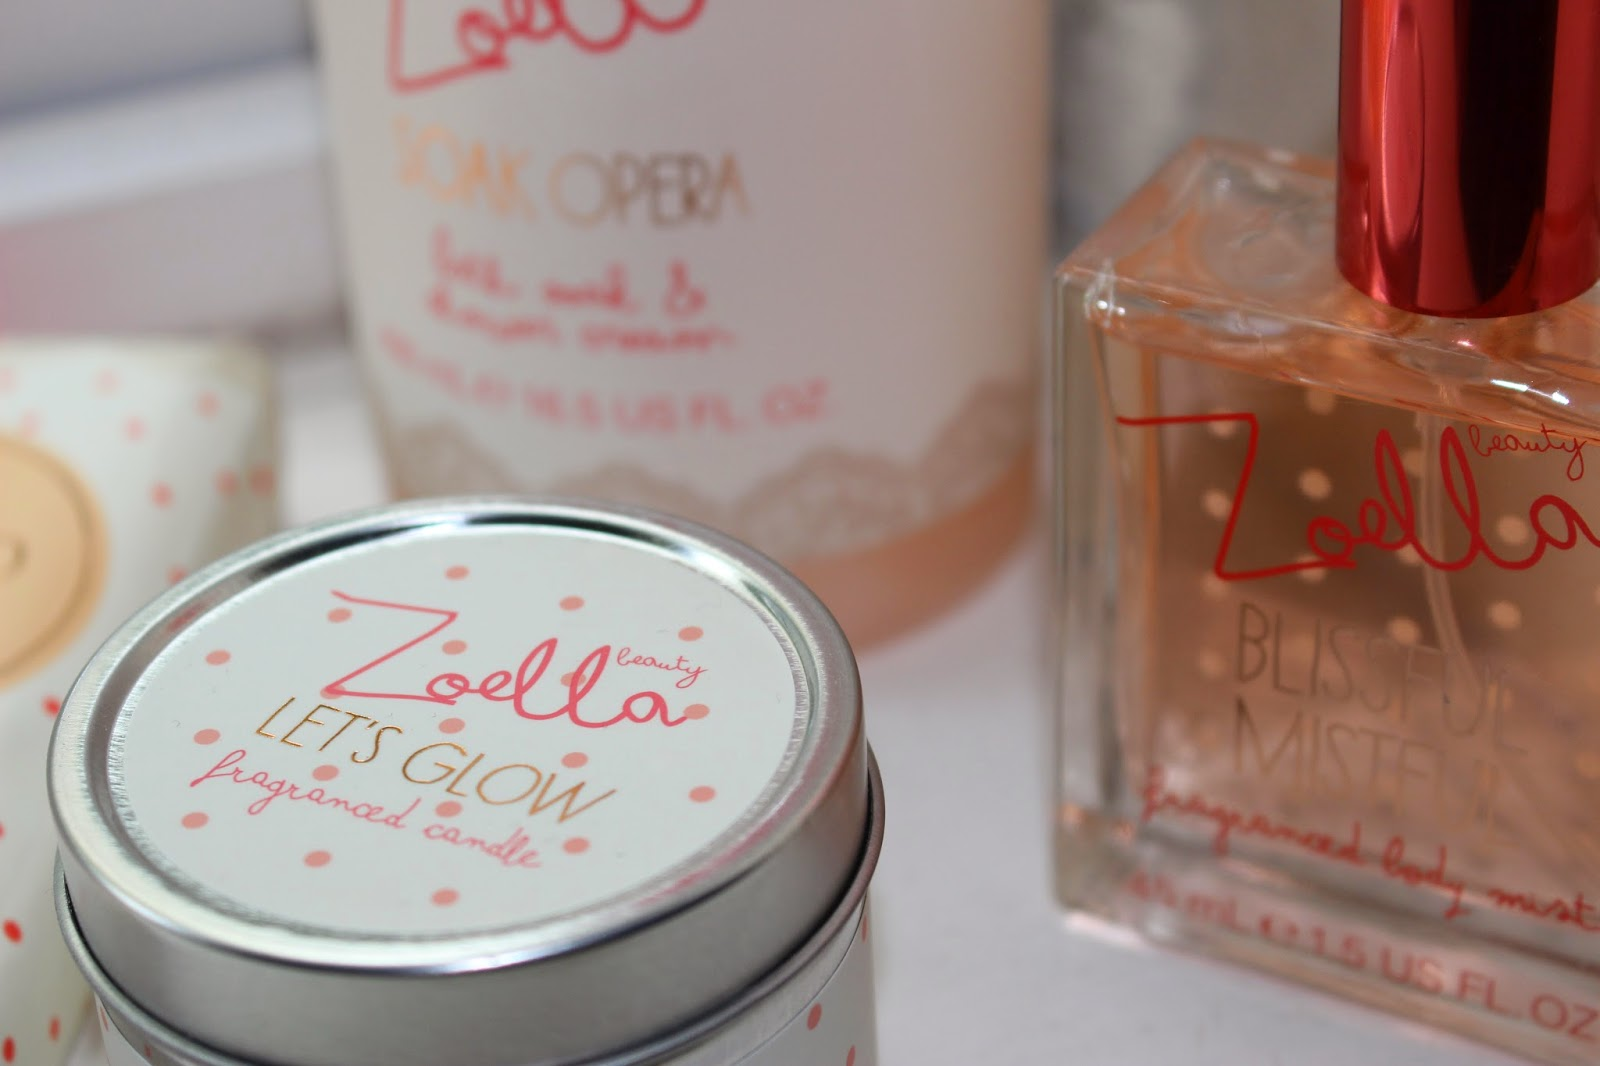 Zoella Beauty Candle